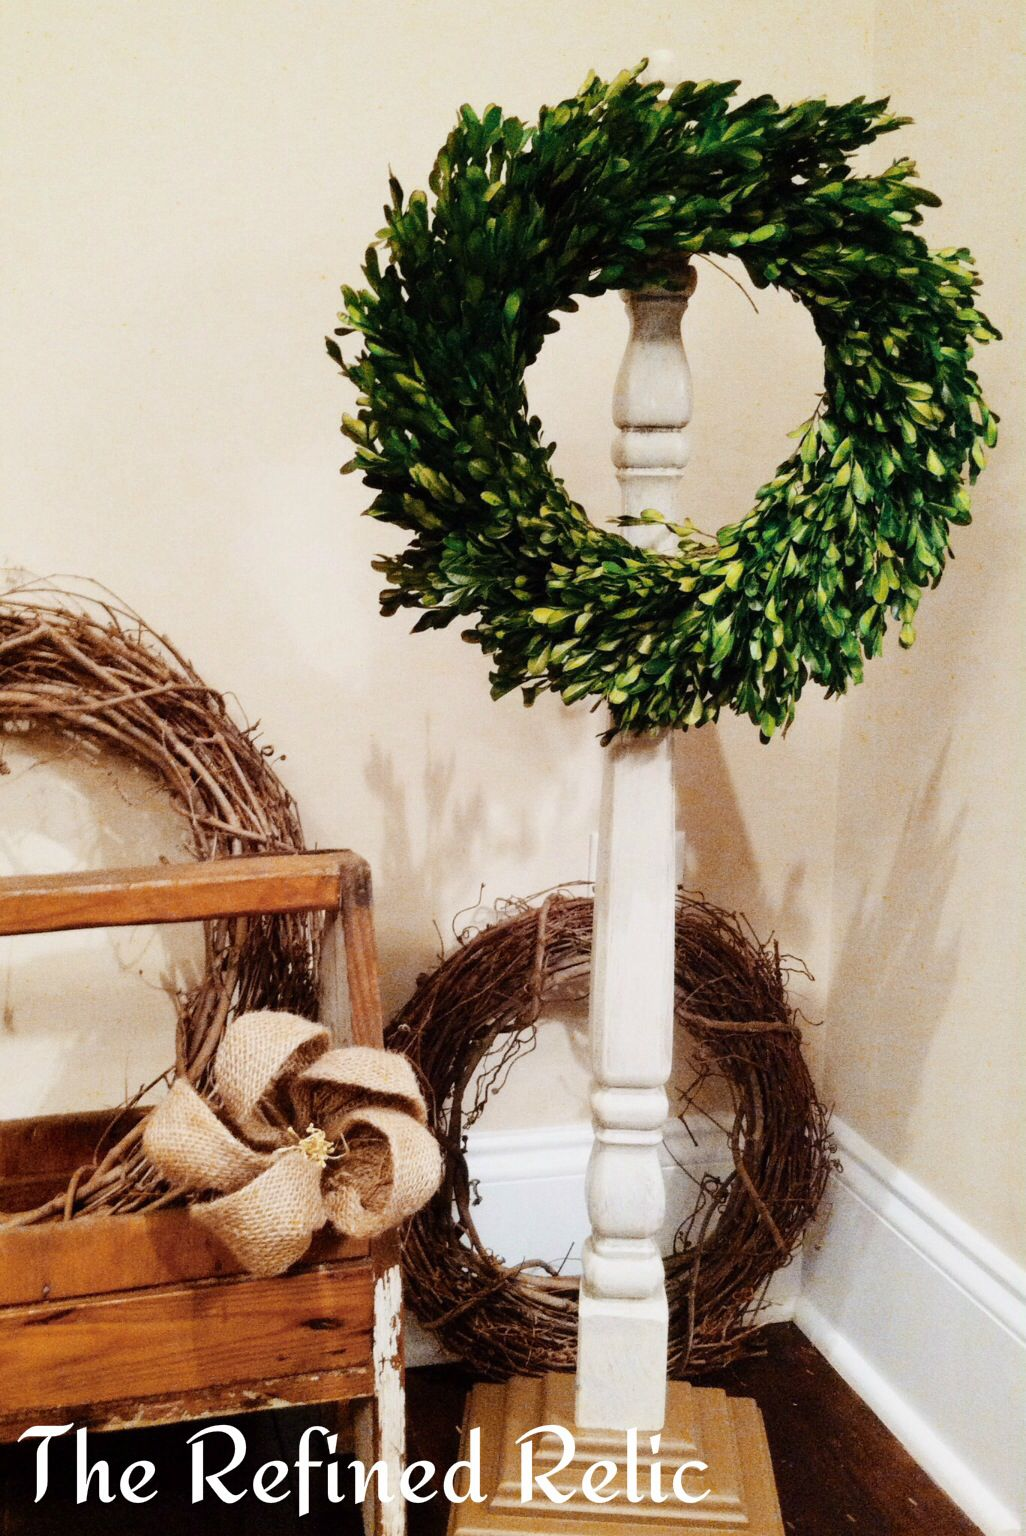 Repurposed Table Leg Wreath Holder A Perfect Way To Display Christmas Wreaths Stockings And Other Christmas Deco Spindle Crafts Wreath Holder Recycled Decor